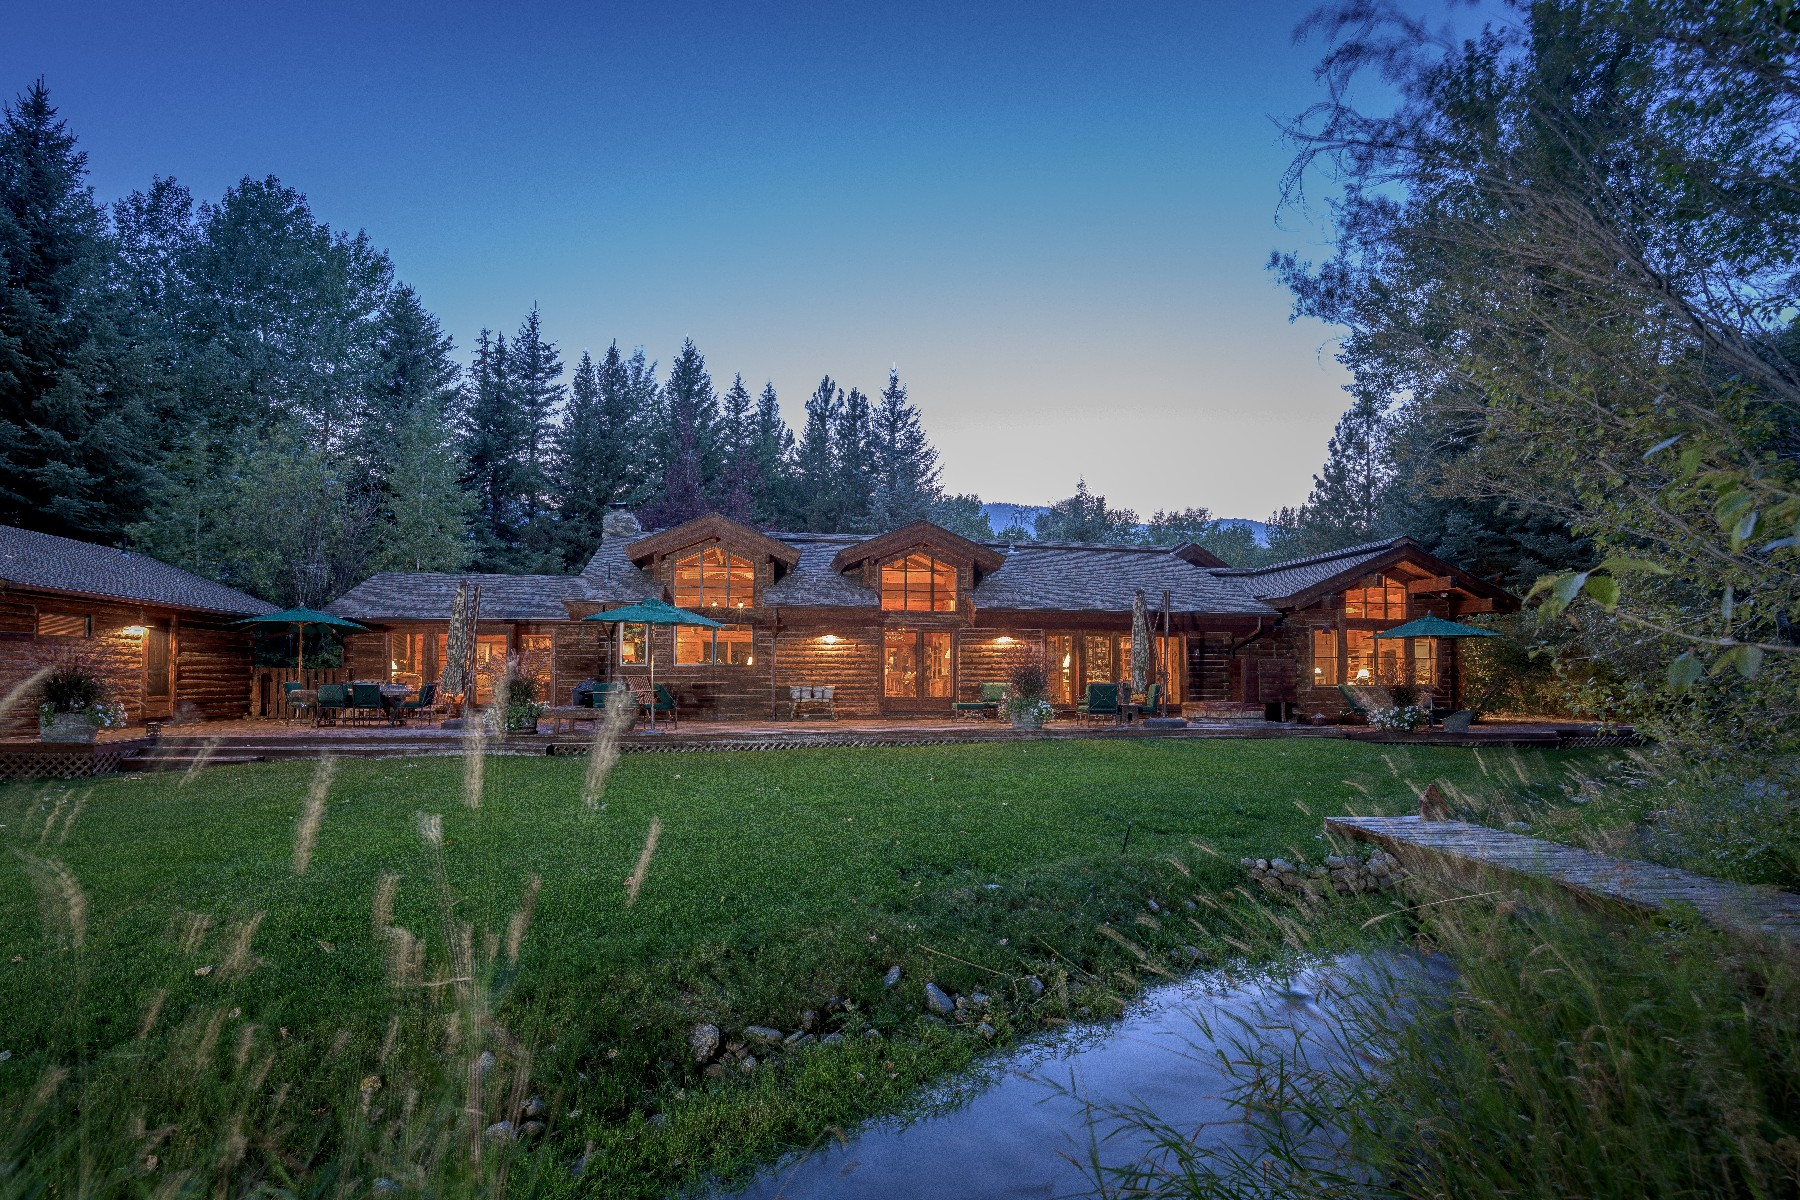 Casa Unifamiliar por un Venta en Captivating Gimlet Compound 102 Deer Run Rd Ketchum, Idaho, 83340 Estados Unidos